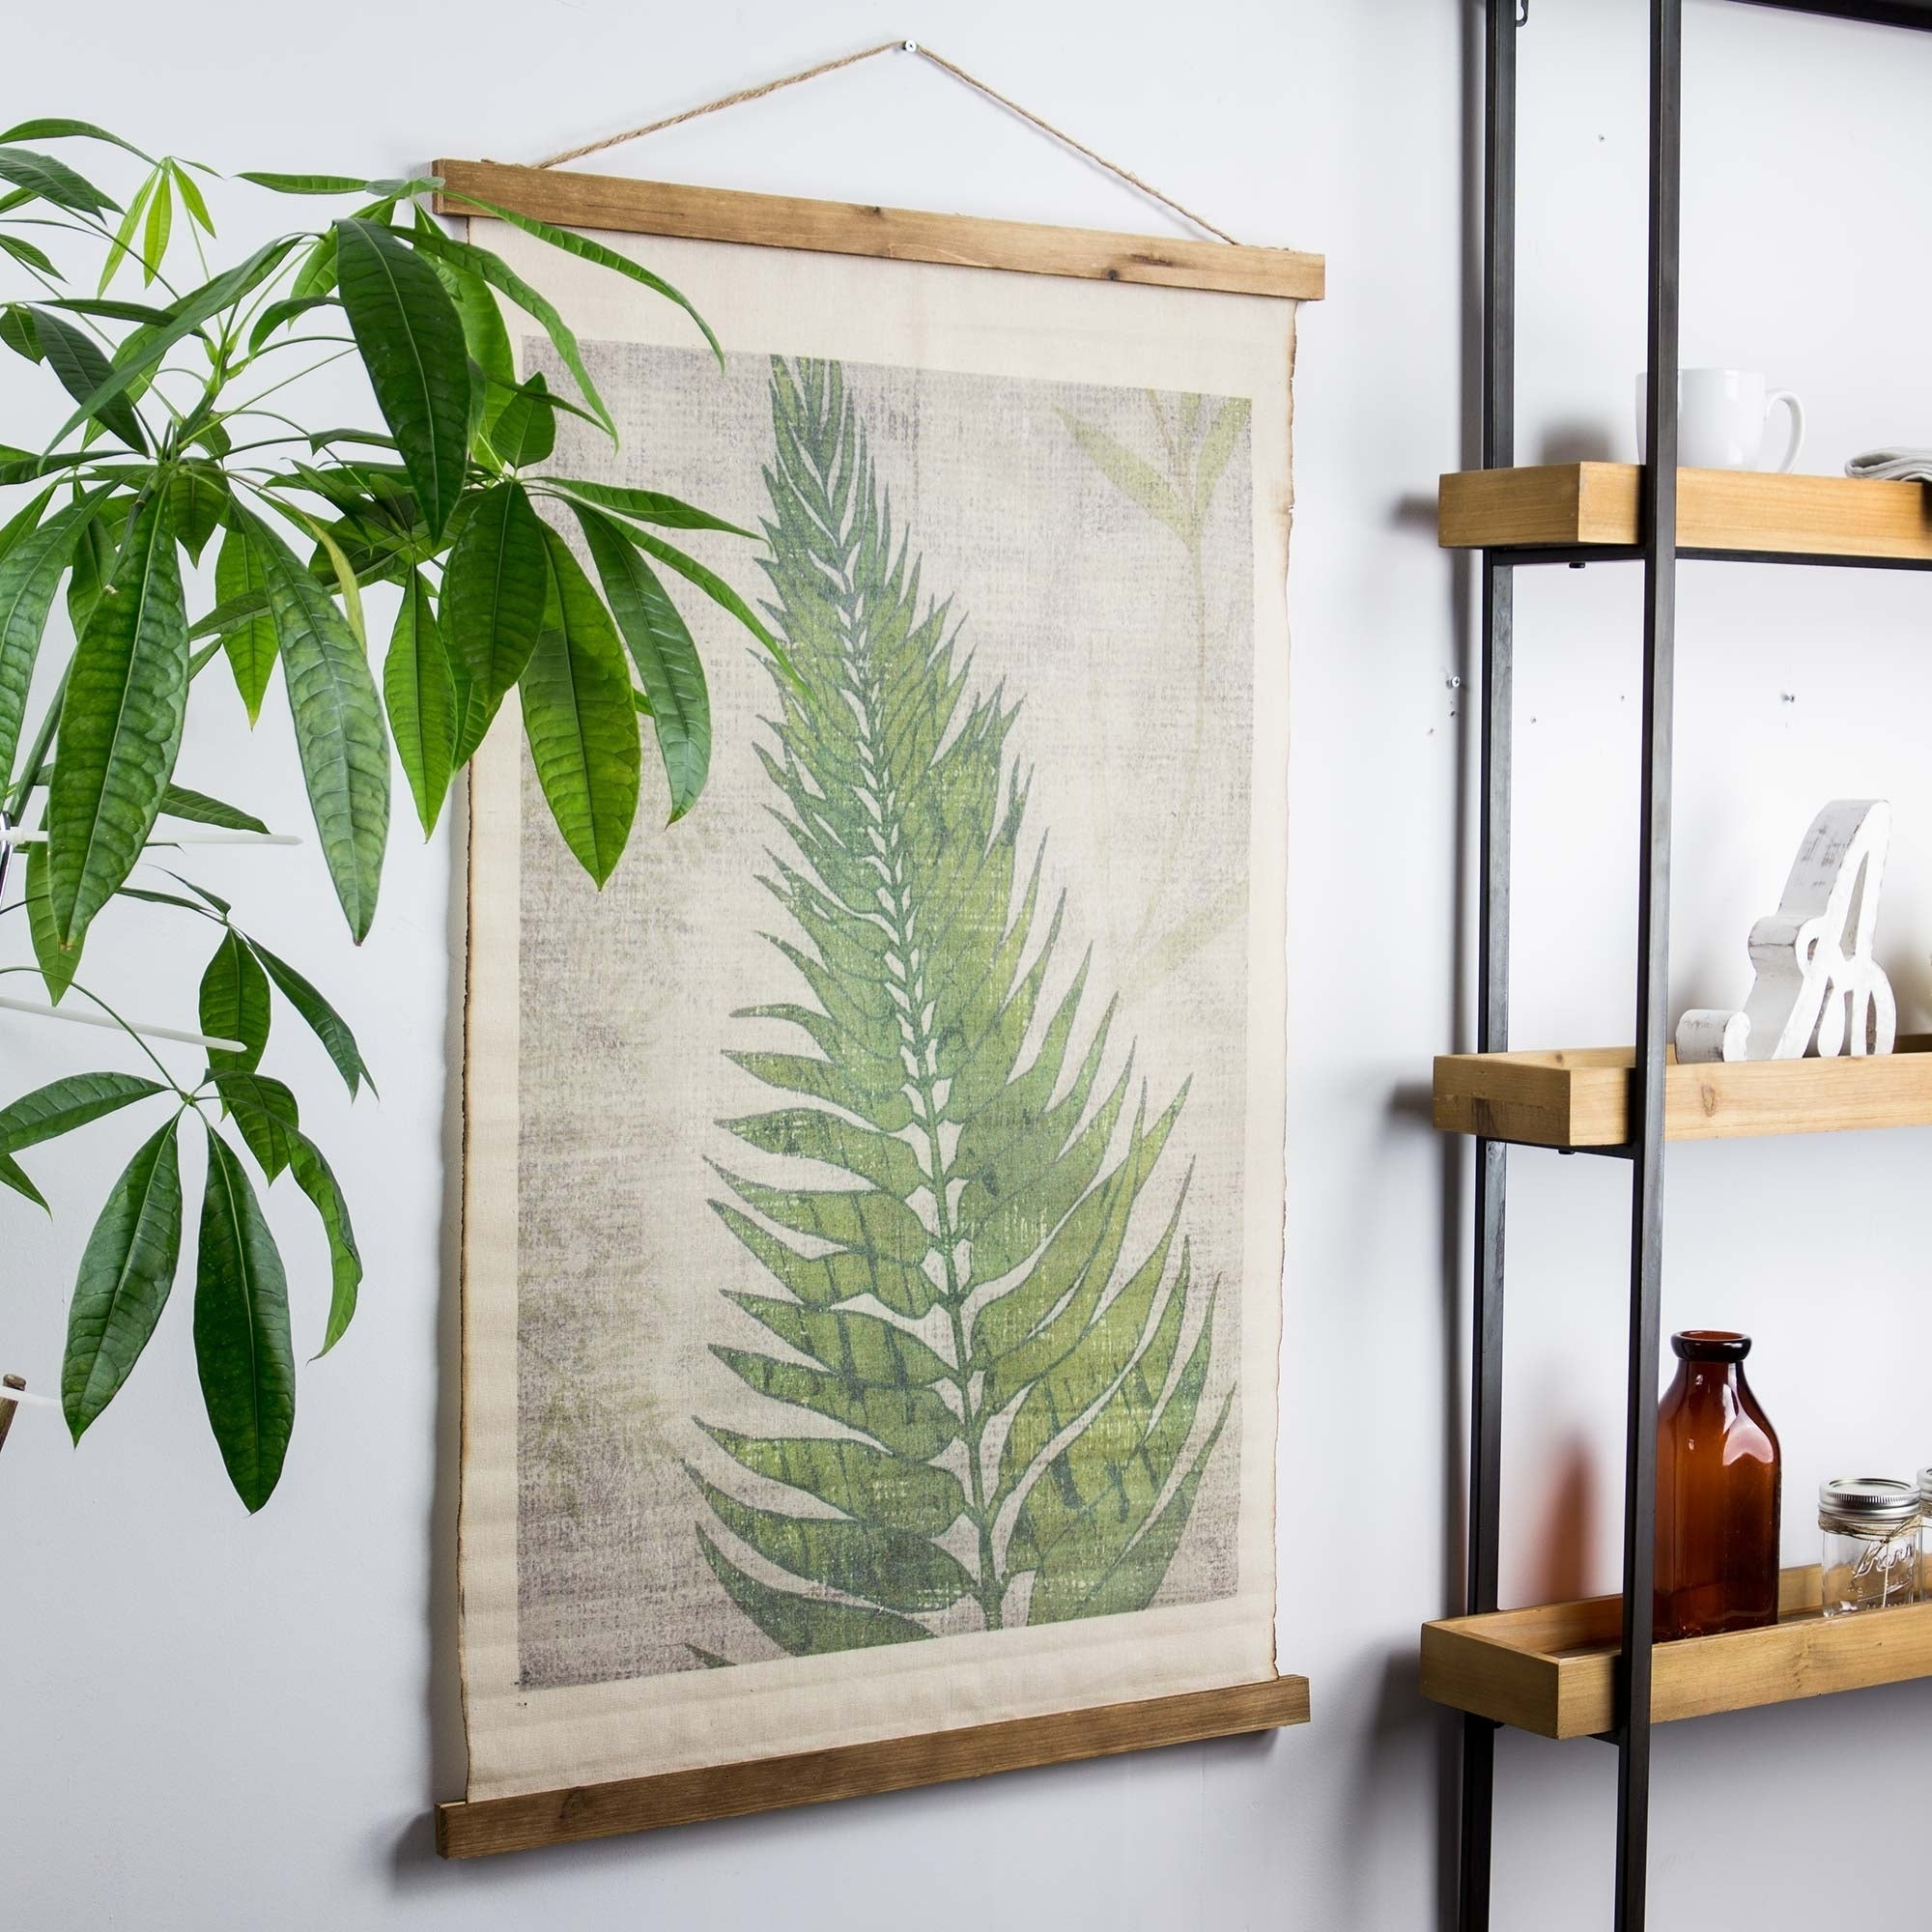 Scroll Leaf Wall Decor In Current Shop American Art Decor Fern Leaf Wall Scroll Tapestry With Rope (View 10 of 20)